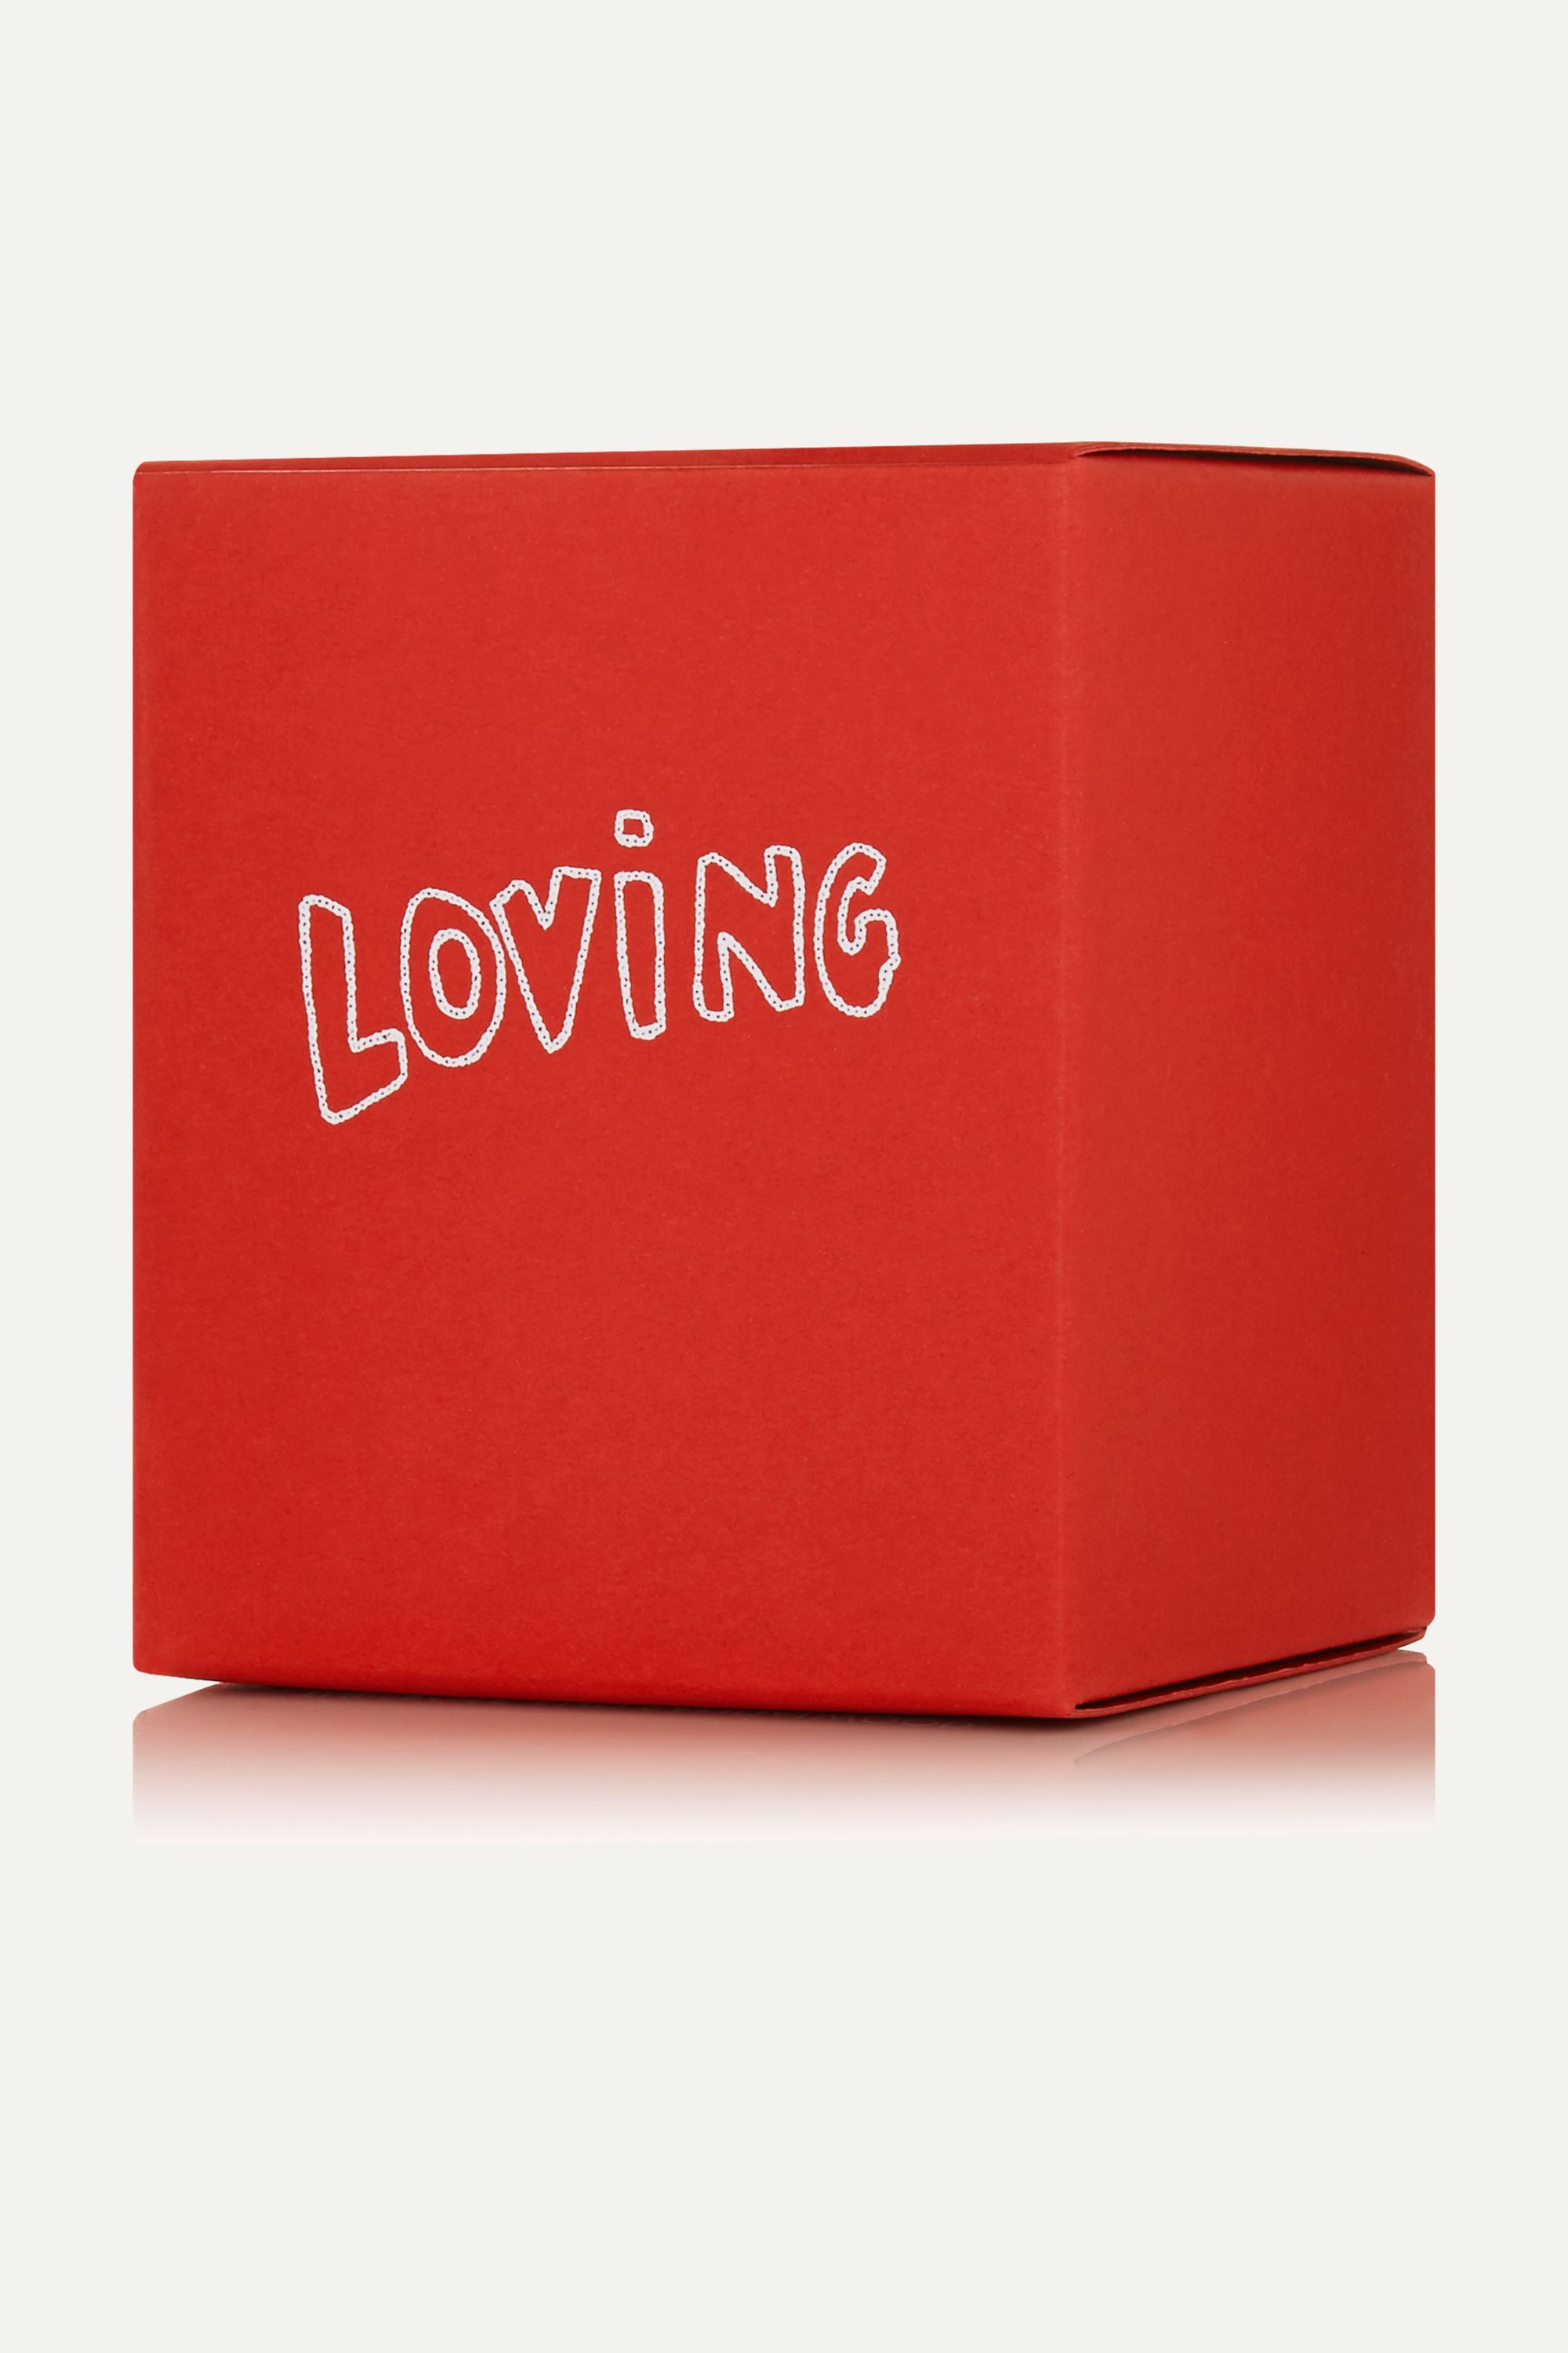 Bella Freud Parfum Loving scented candle, 190g